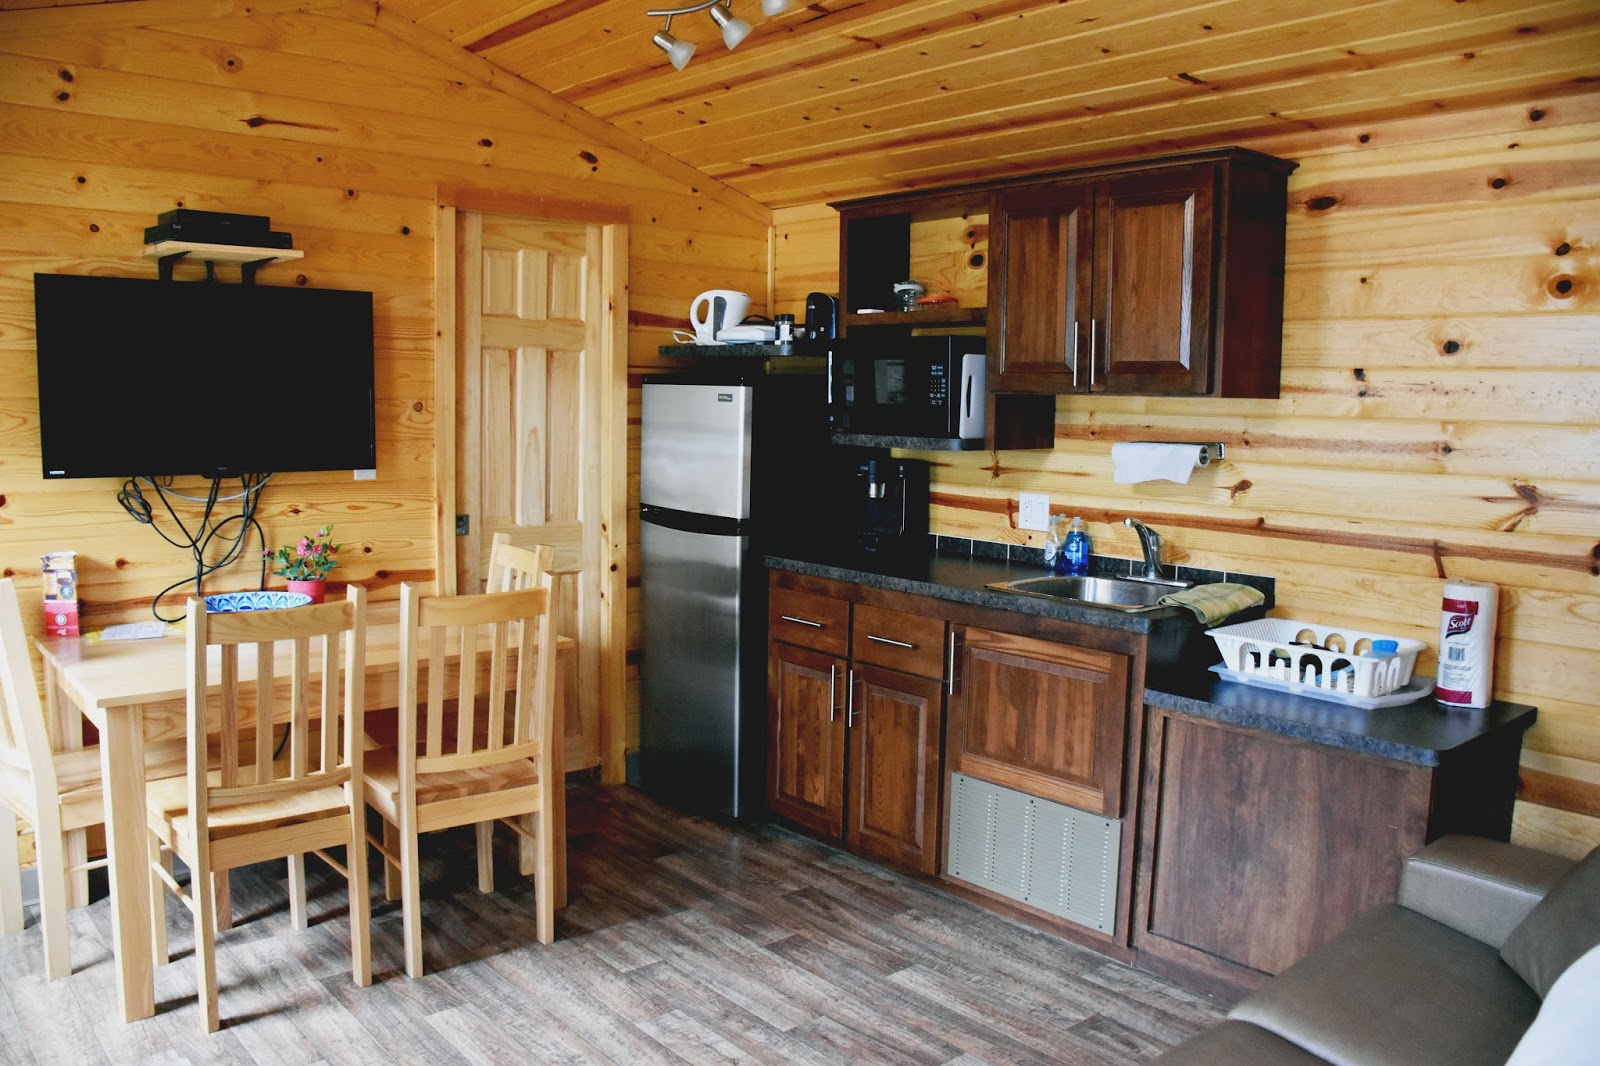 Our Cabin Had A Kitchen With Fridge Microwave And Sink It Didnt Have Stove But There Are Models That Do If You So Desire Is Barbecue Right